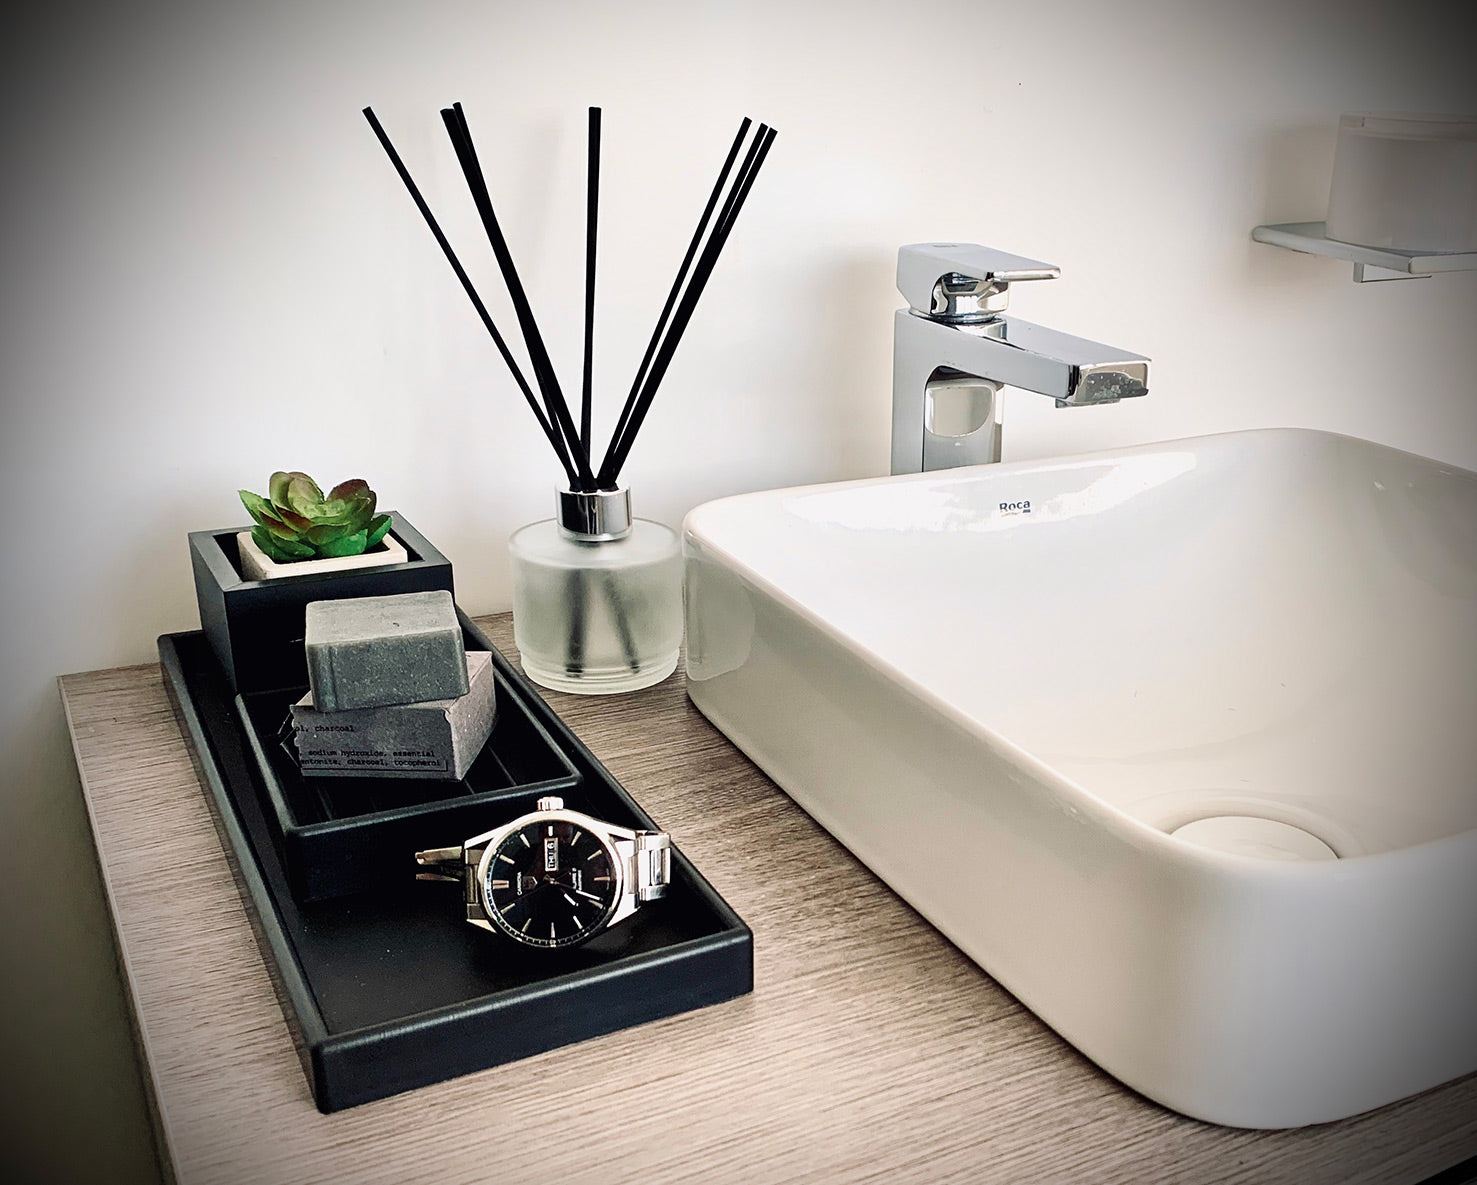 Styled bathroom tray with plant, soap, watch and diffuser